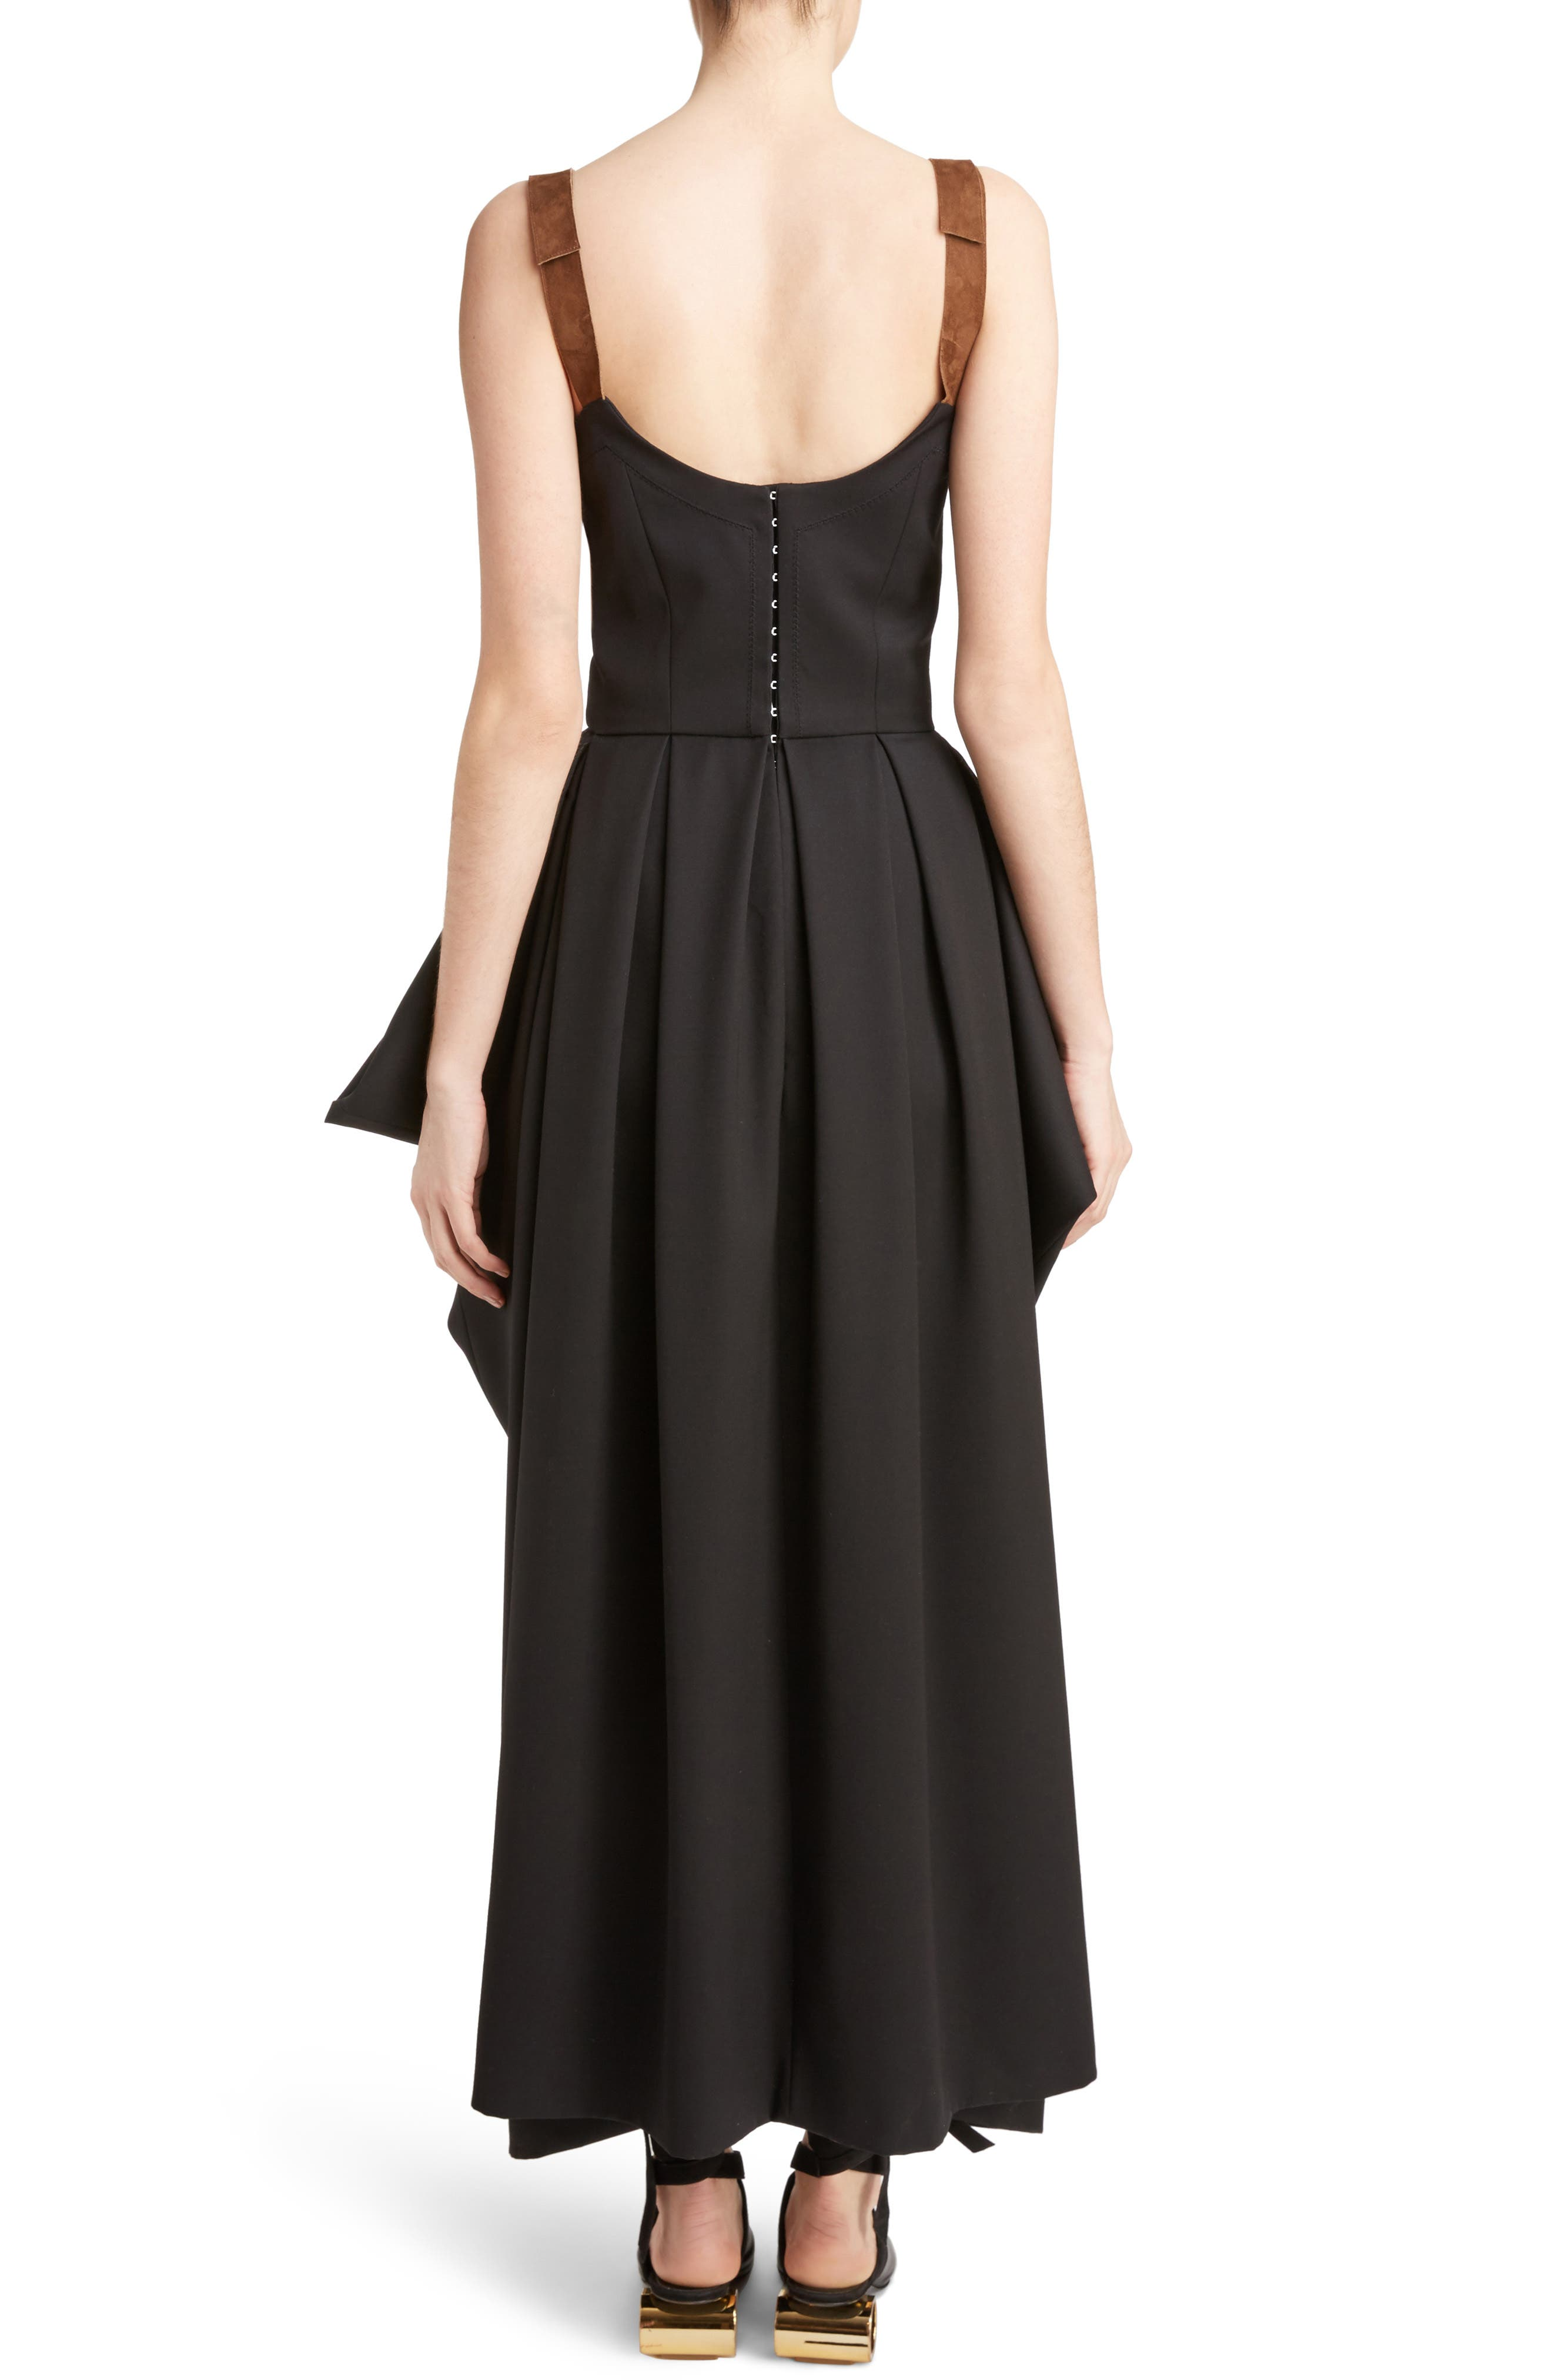 J.W.ANDERSON Drape Pocket Wool Dress,                             Alternate thumbnail 3, color,                             Black